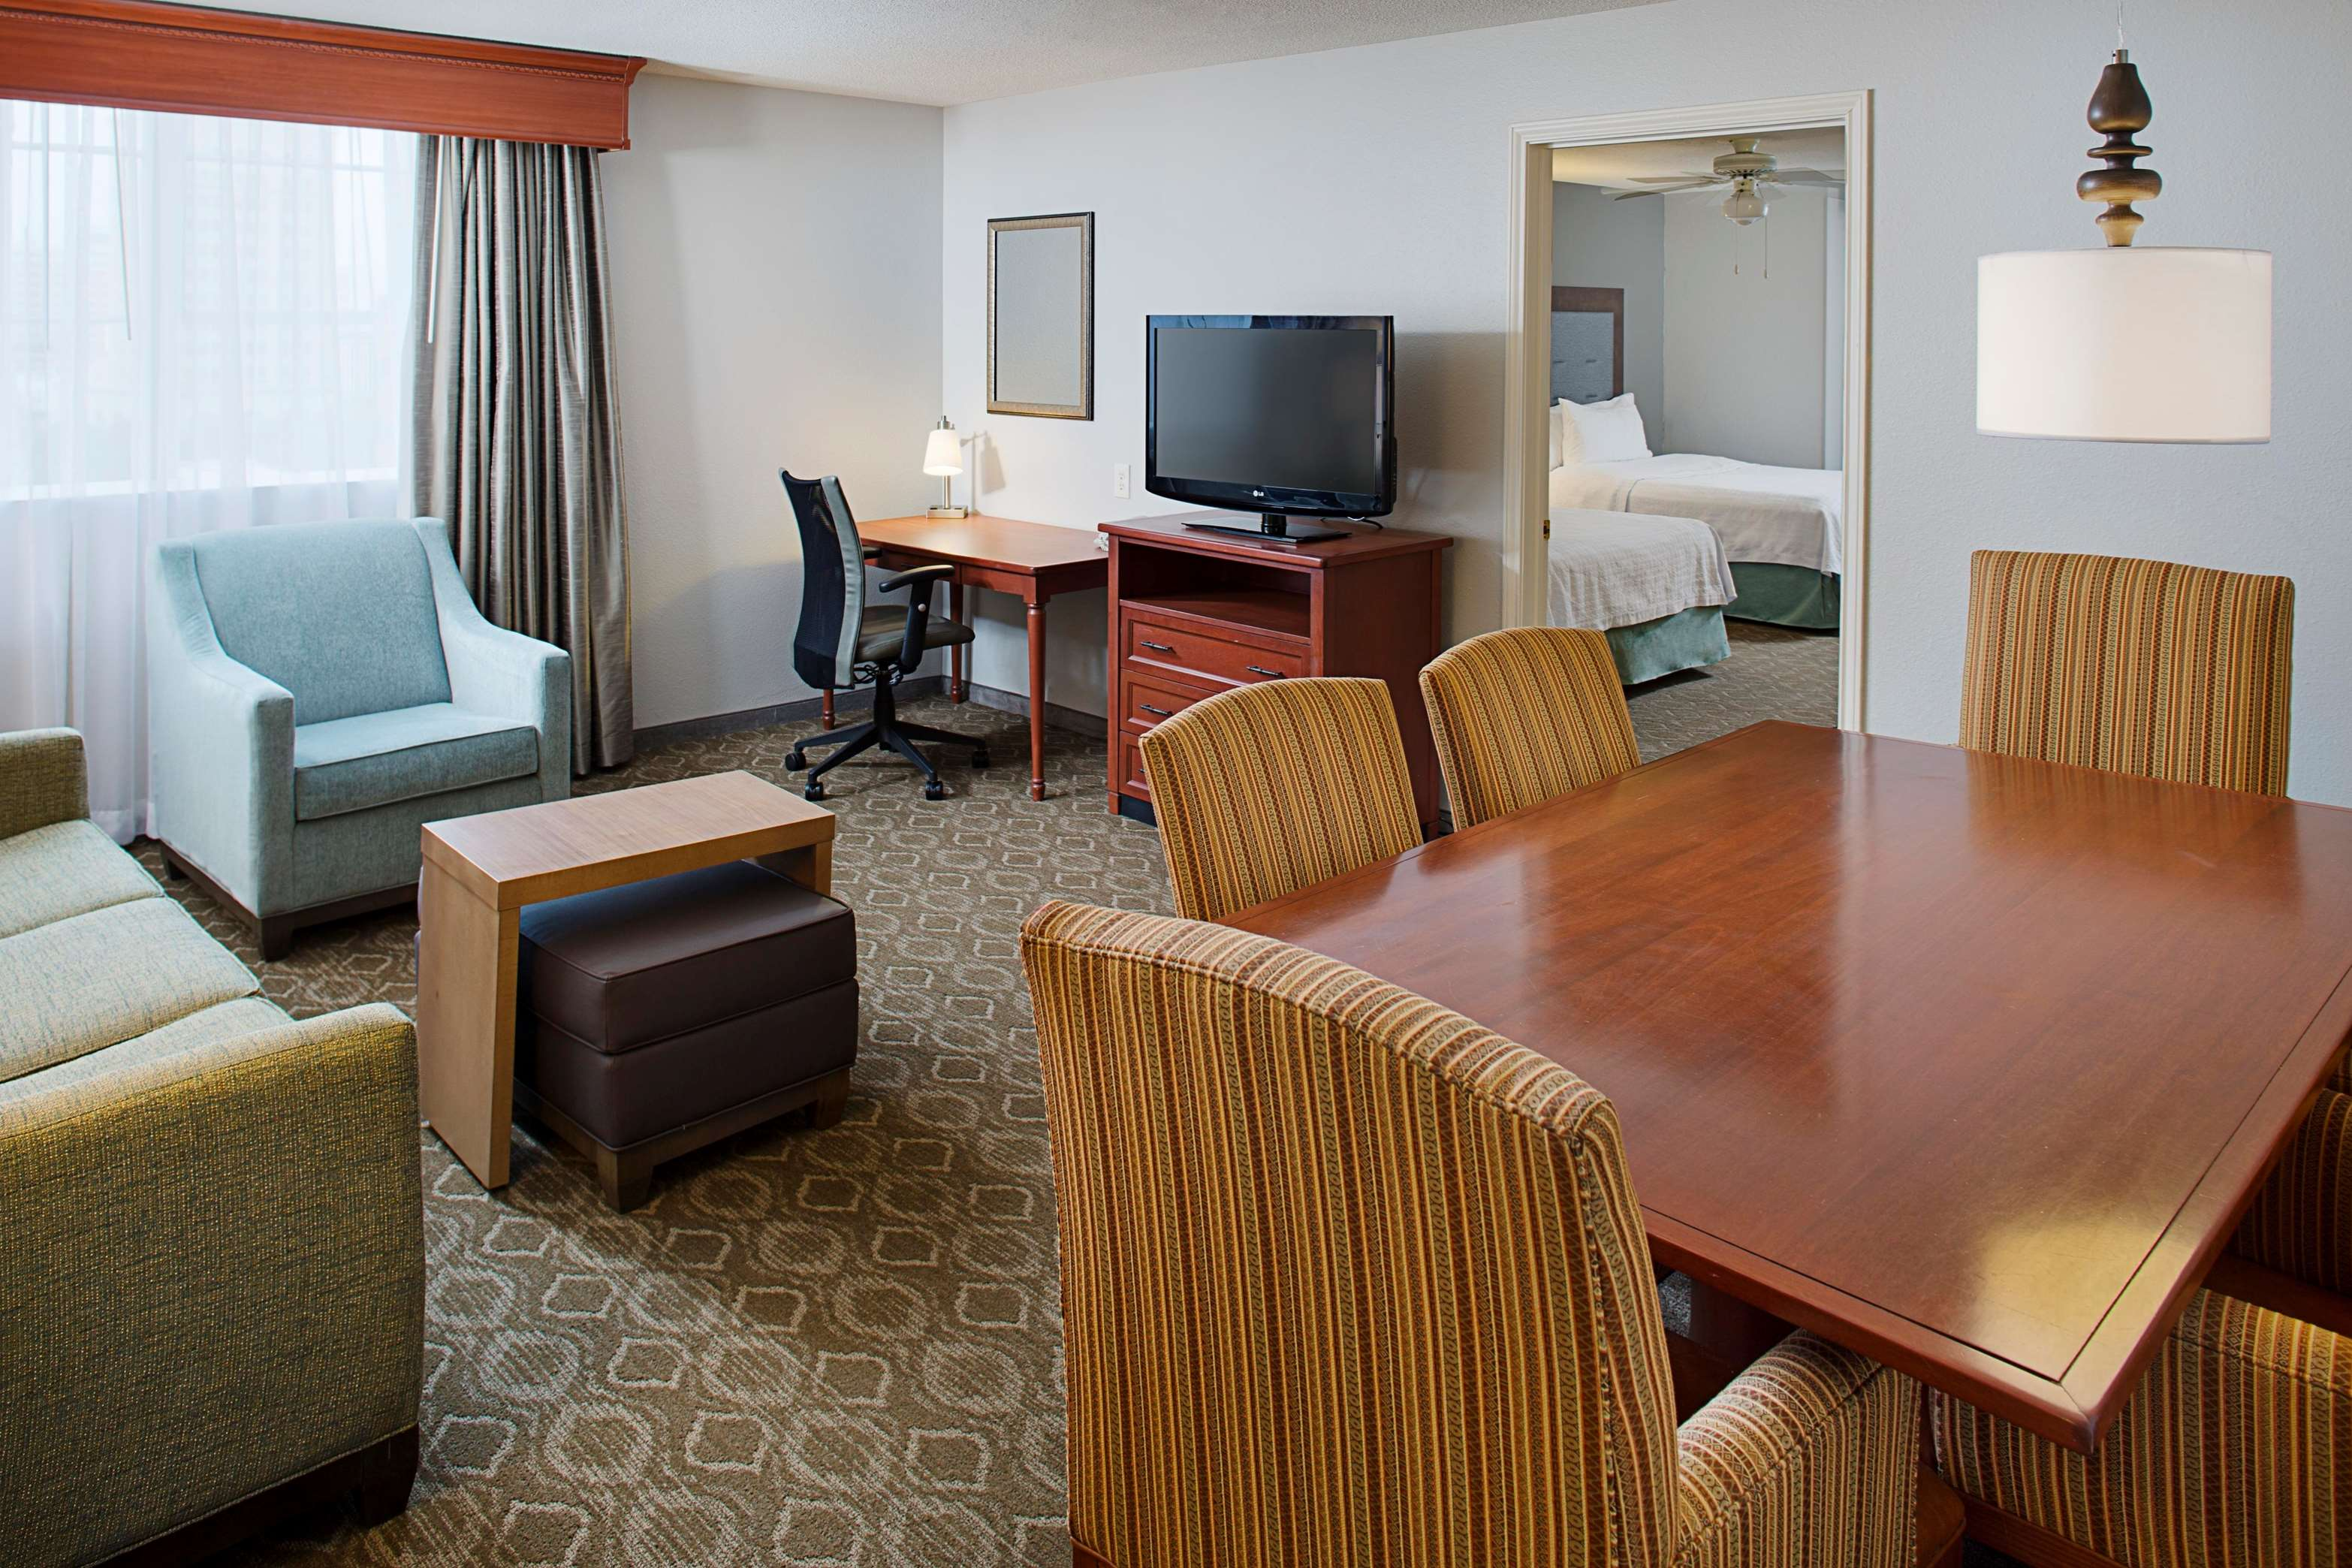 Homewood Suites by Hilton San Antonio-Riverwalk/Downtown image 10